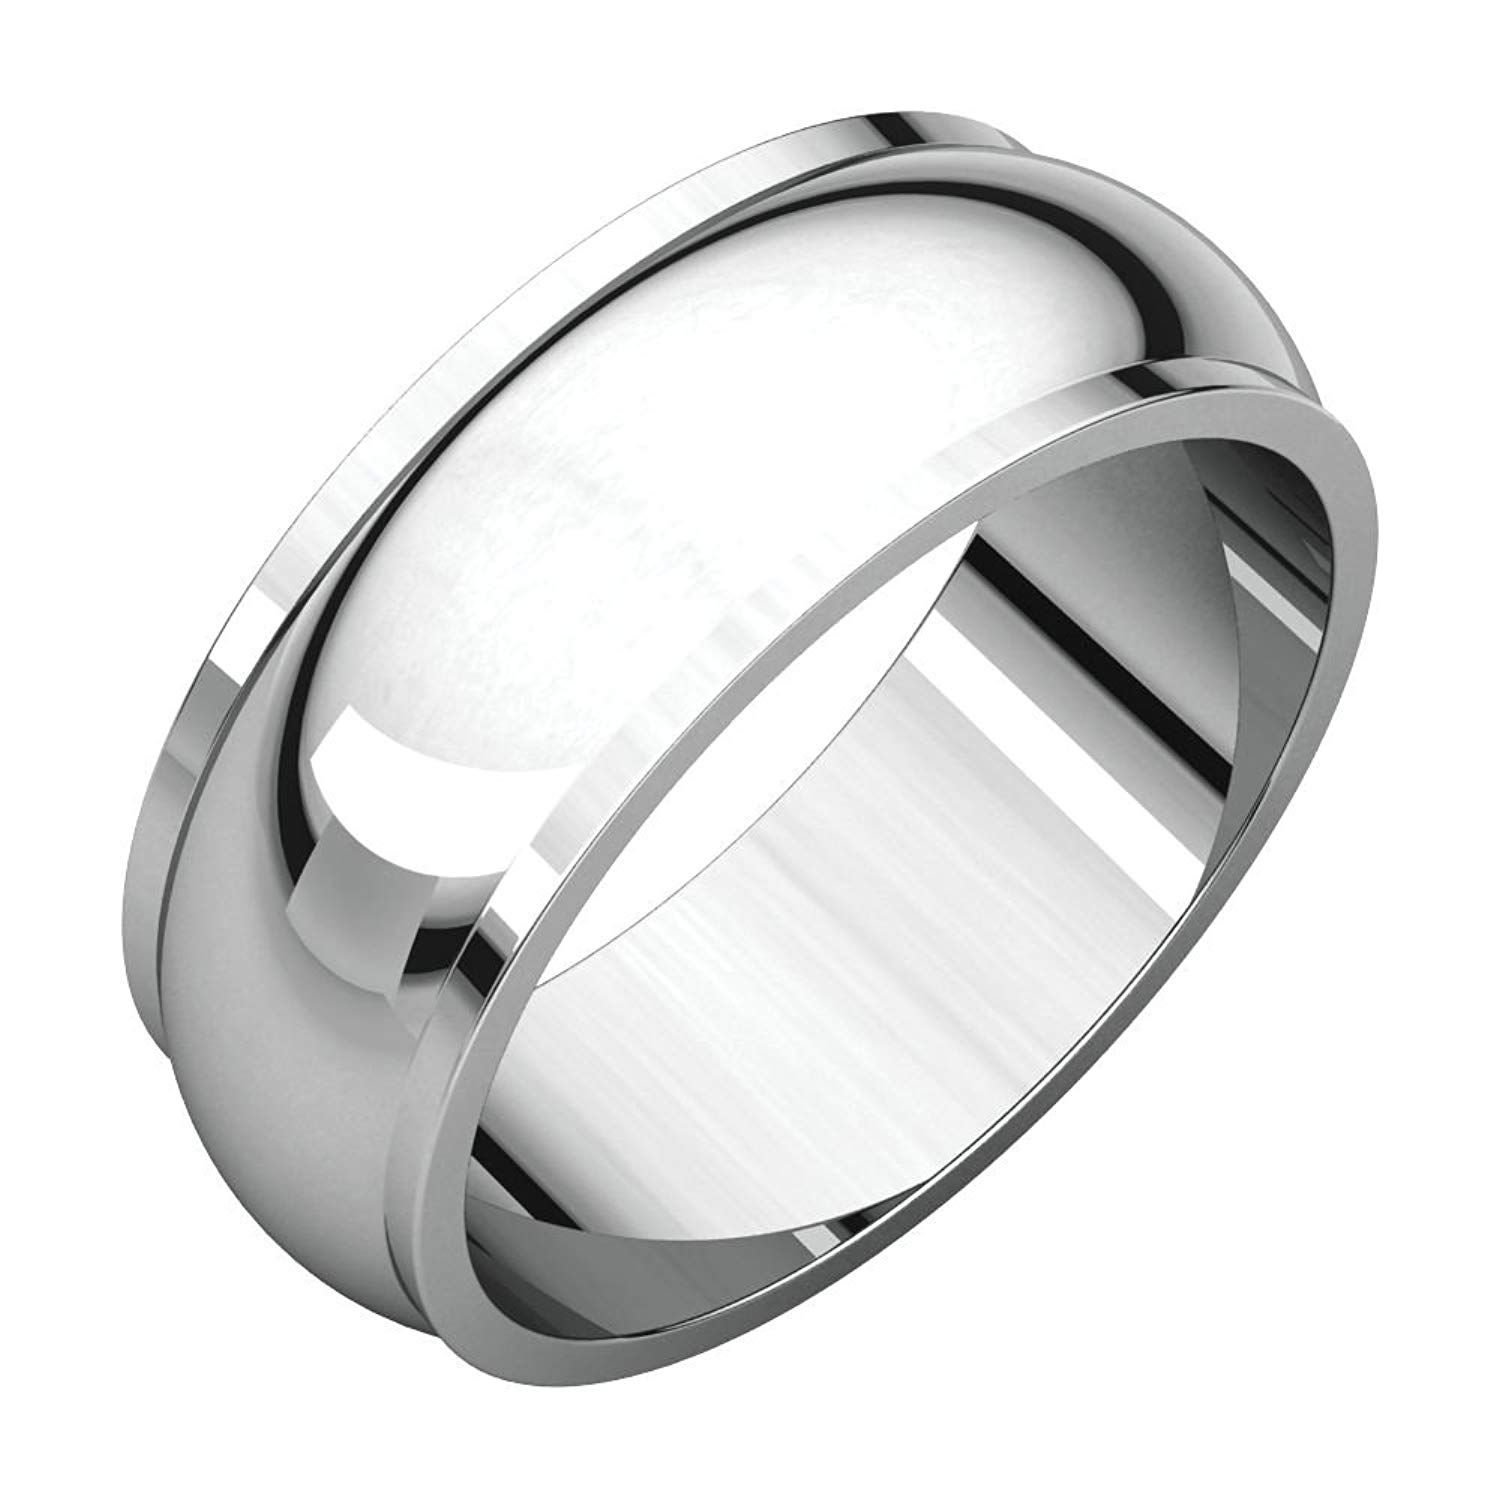 7MM Sterling Silver High Polished Half-Round Light Comfort Fit Classy Dome Wedding Band Ring